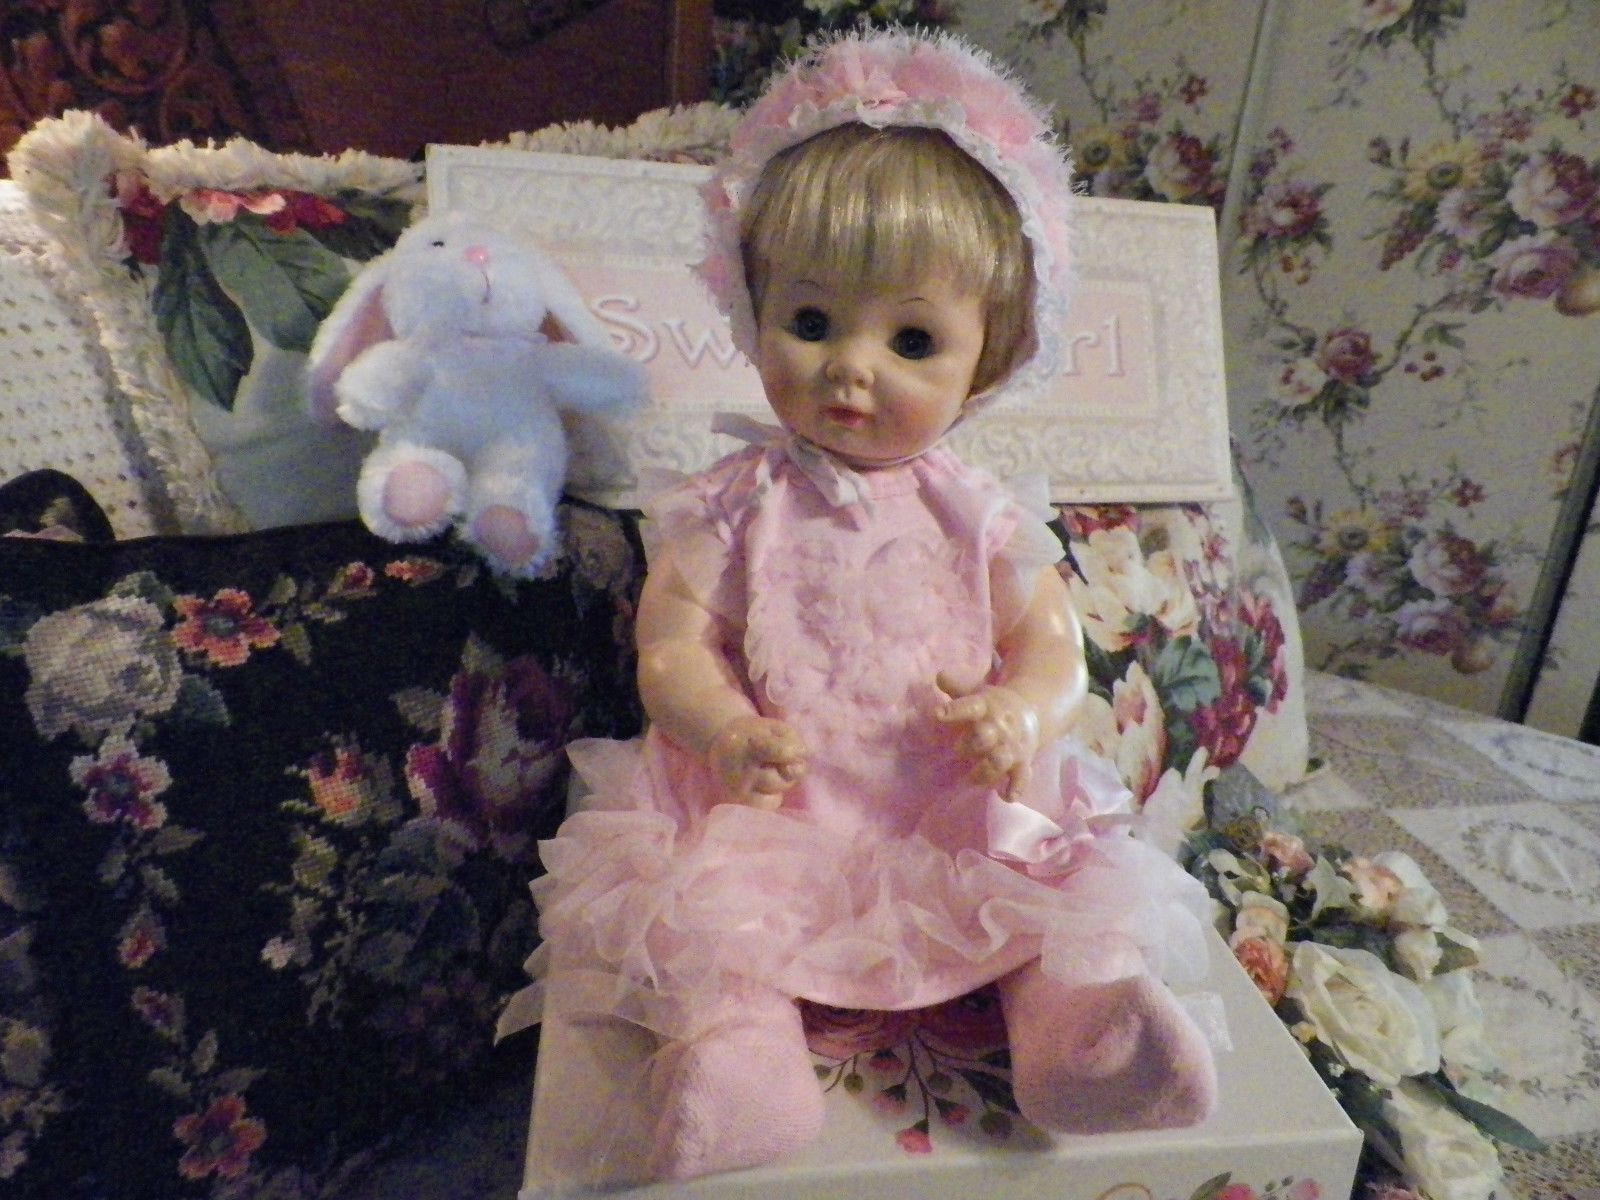 Vintage 1969 Effanbee Baby Doll Adorable Soft Pink Dress w Bonnet & Bunny 17""